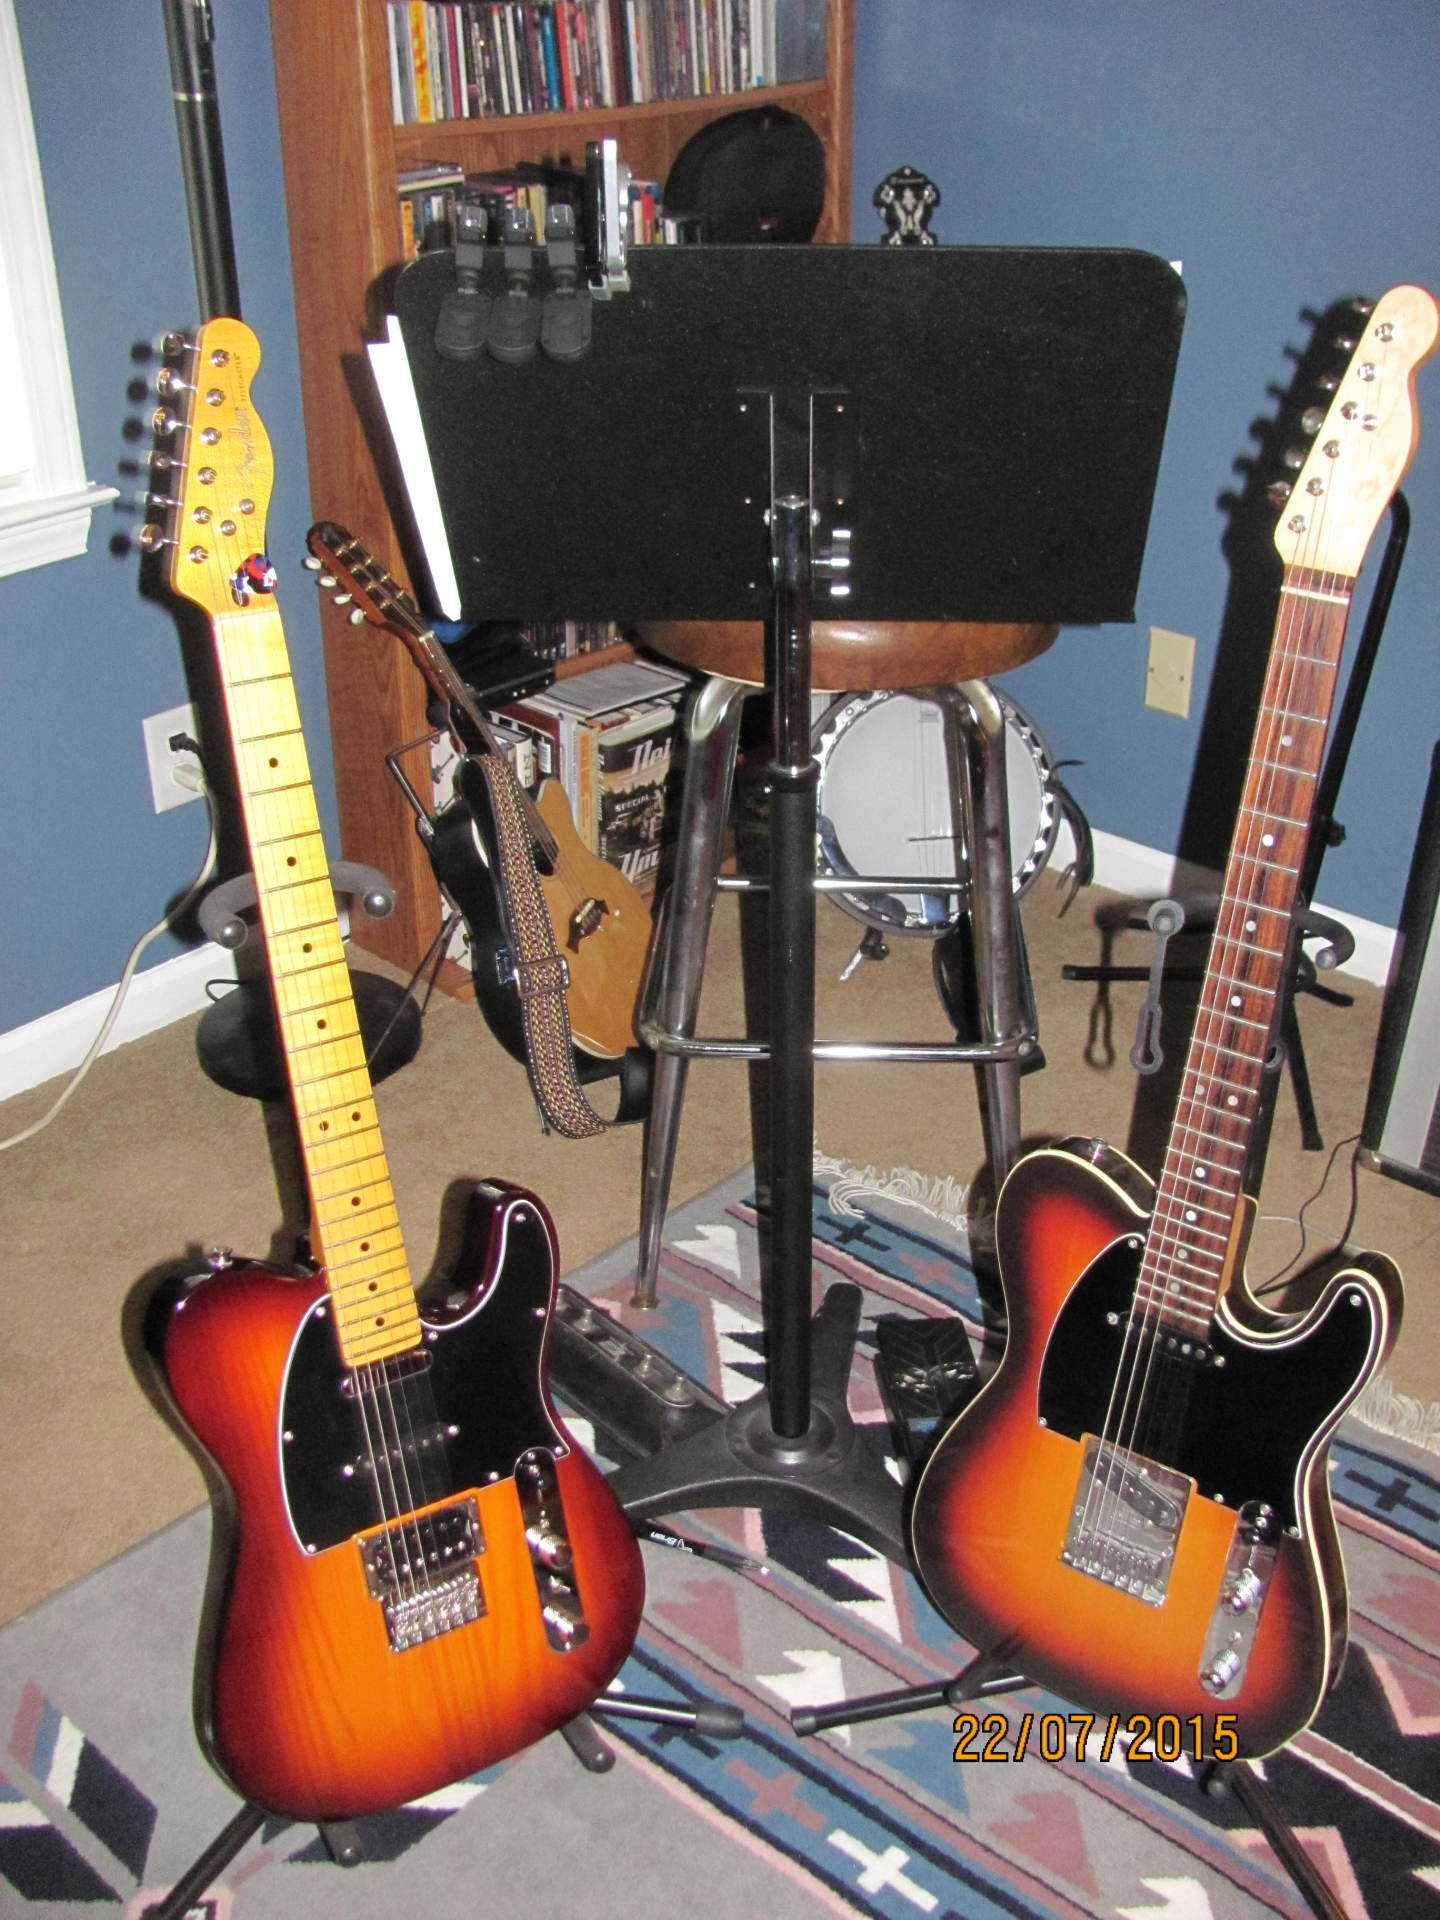 The Tele Collection